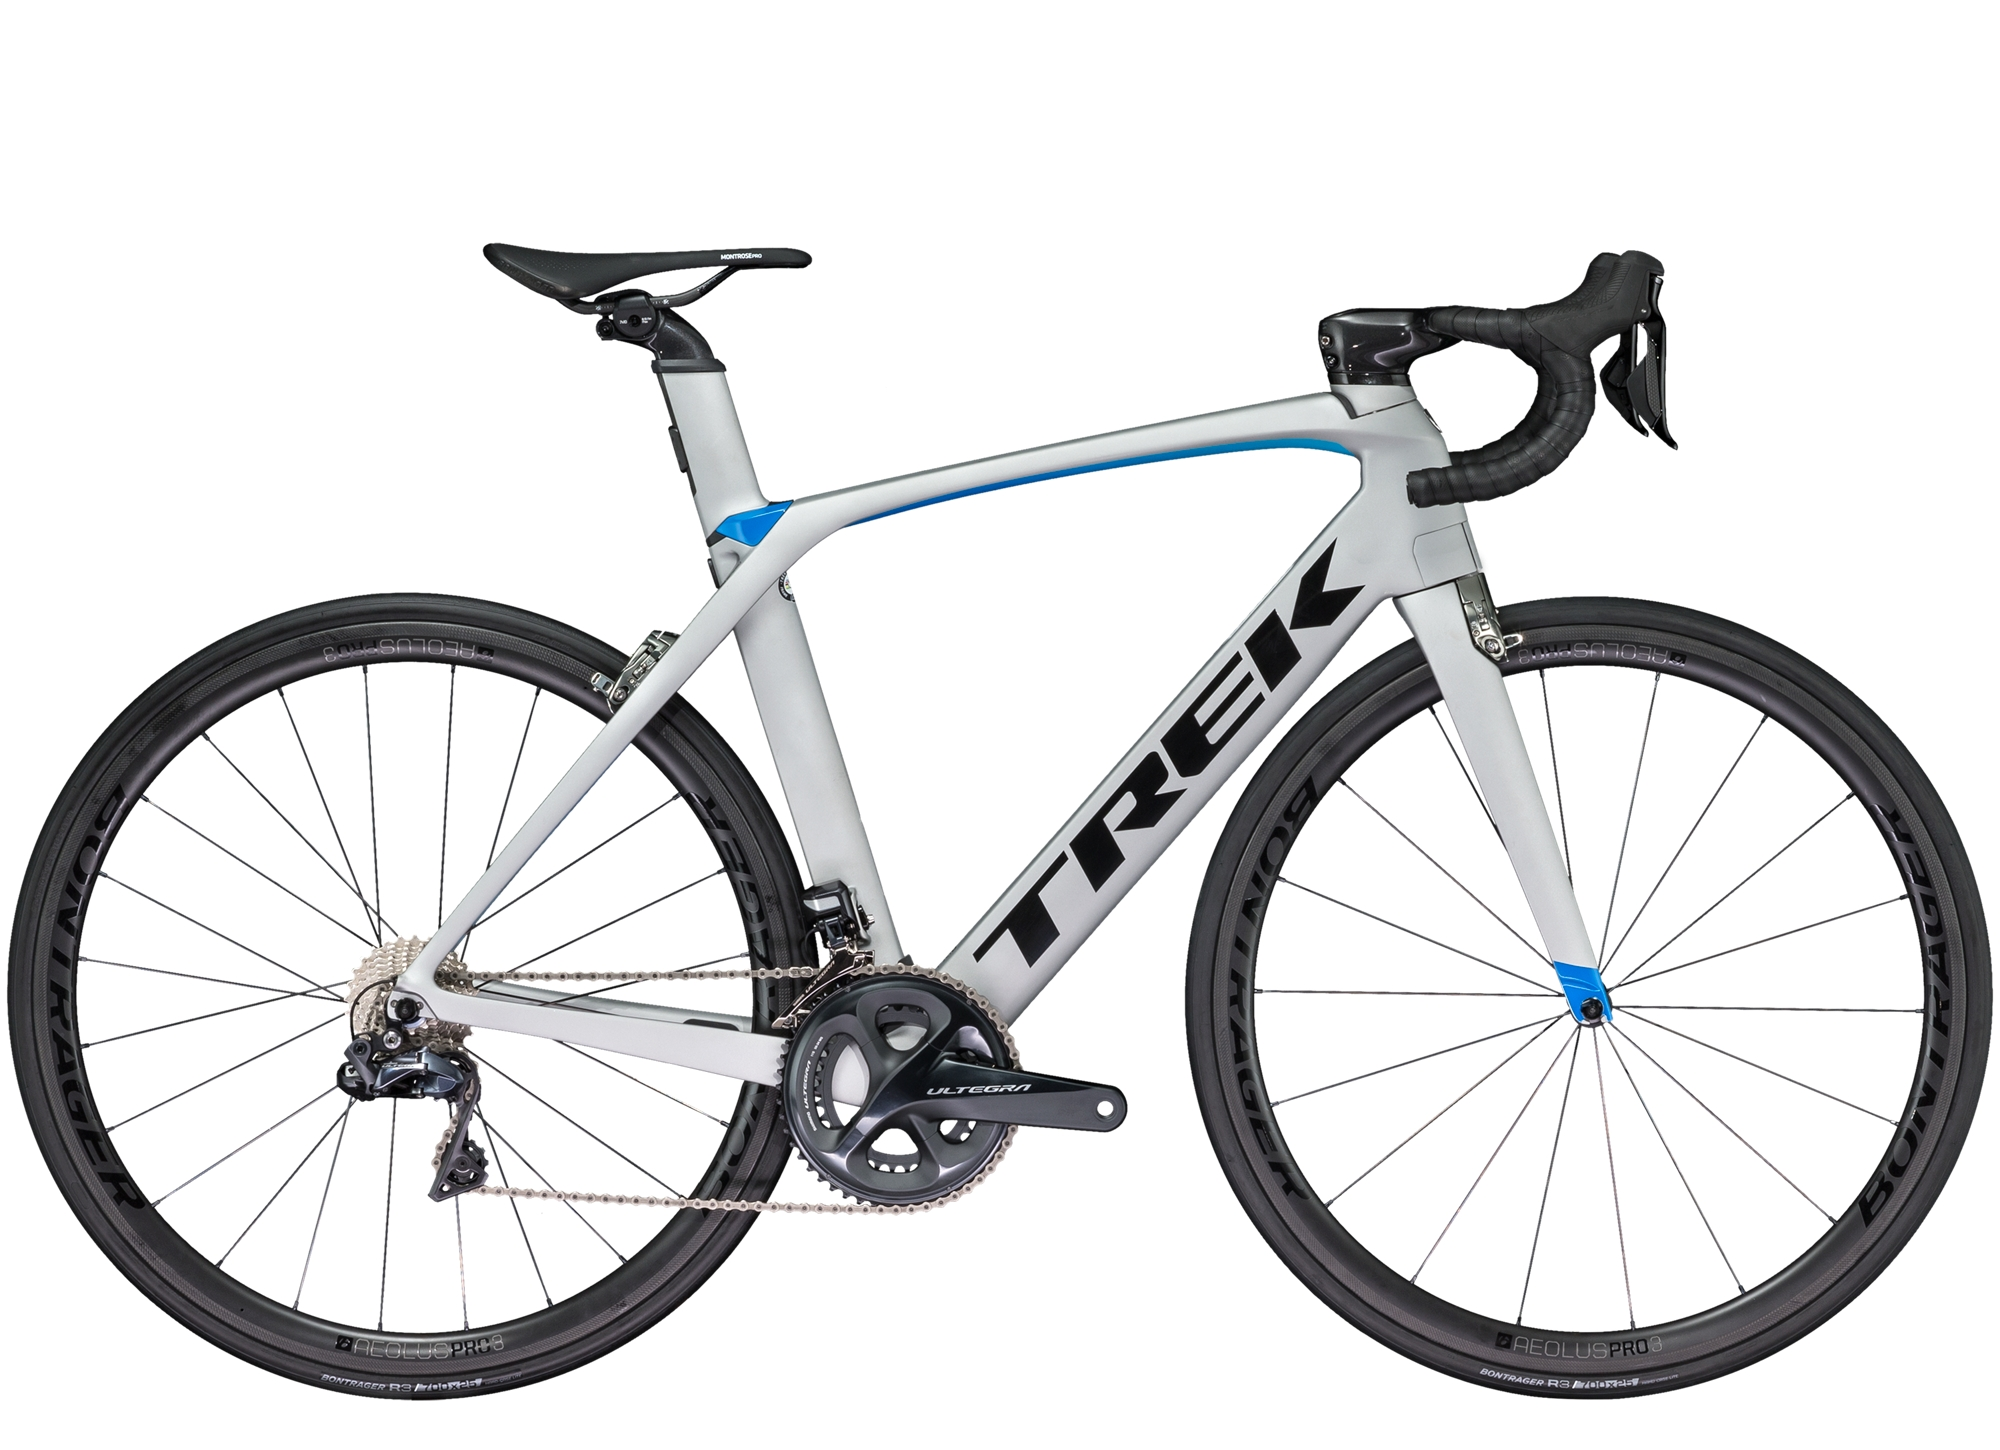 https://trek.scene7.com/is/image/TrekBicycleProducts/1472000_2018_A_1_MADONE_95_C_H2?wid=2000